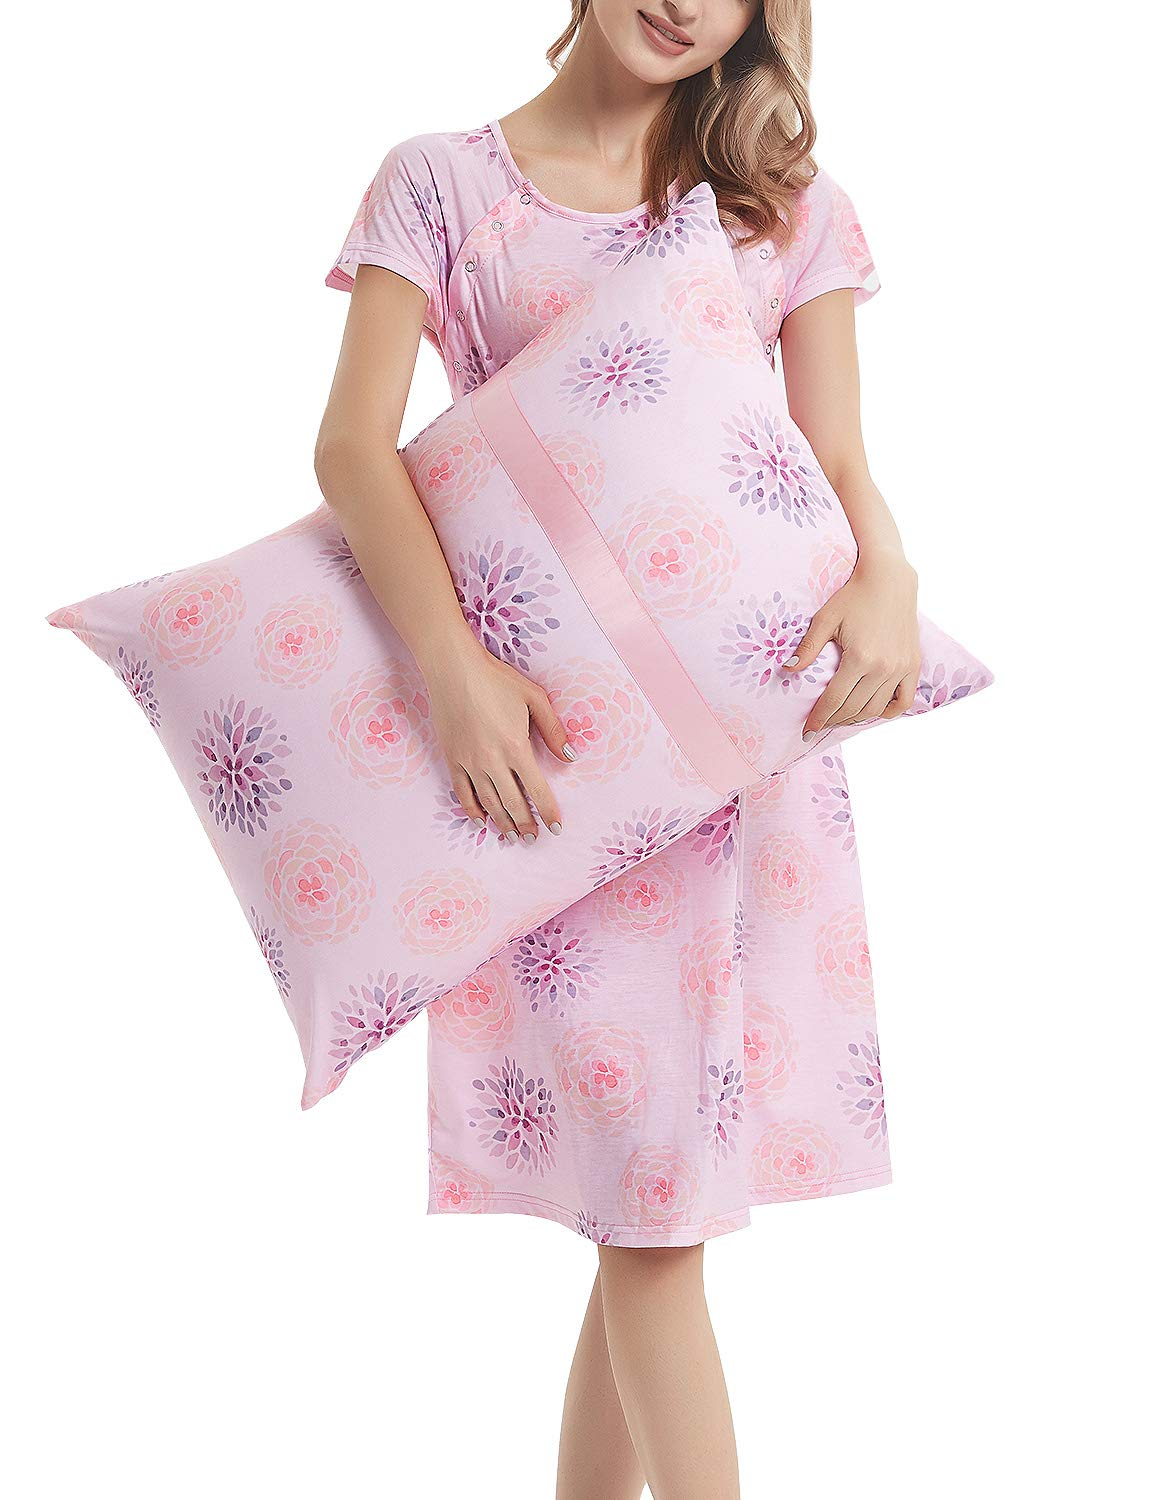 Maternity Labor Delivery Gown Hospital Nightgown Nursing Nightdress with Matching Pillowcase Pink Floral Dress XL